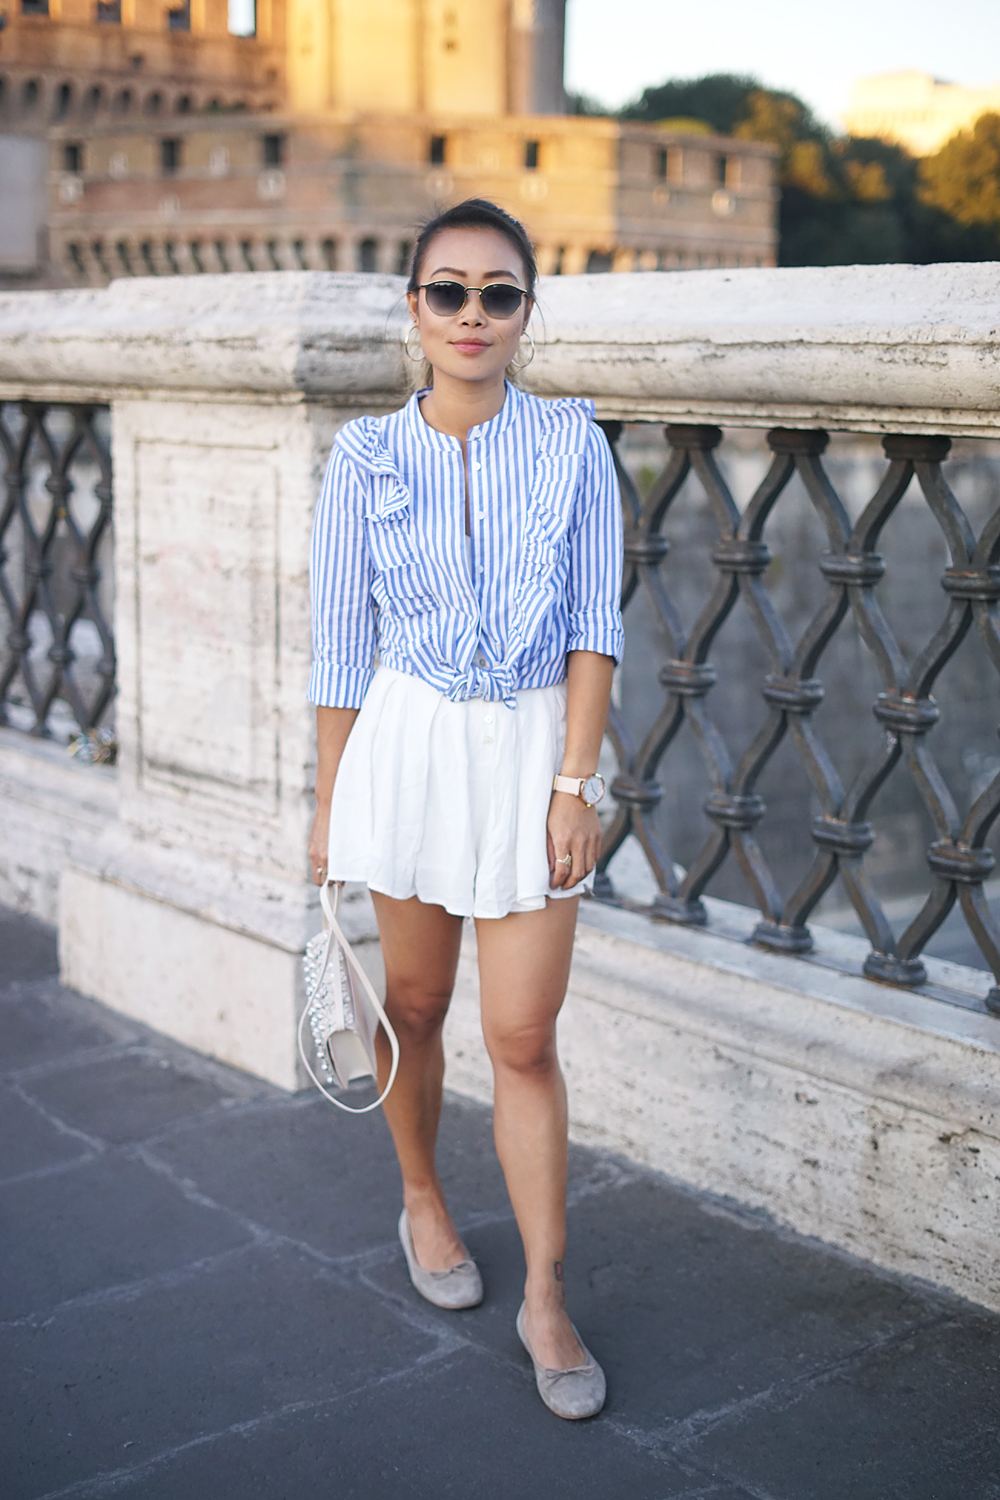 08rome-pontesantangelo-bridge-travel-ootd